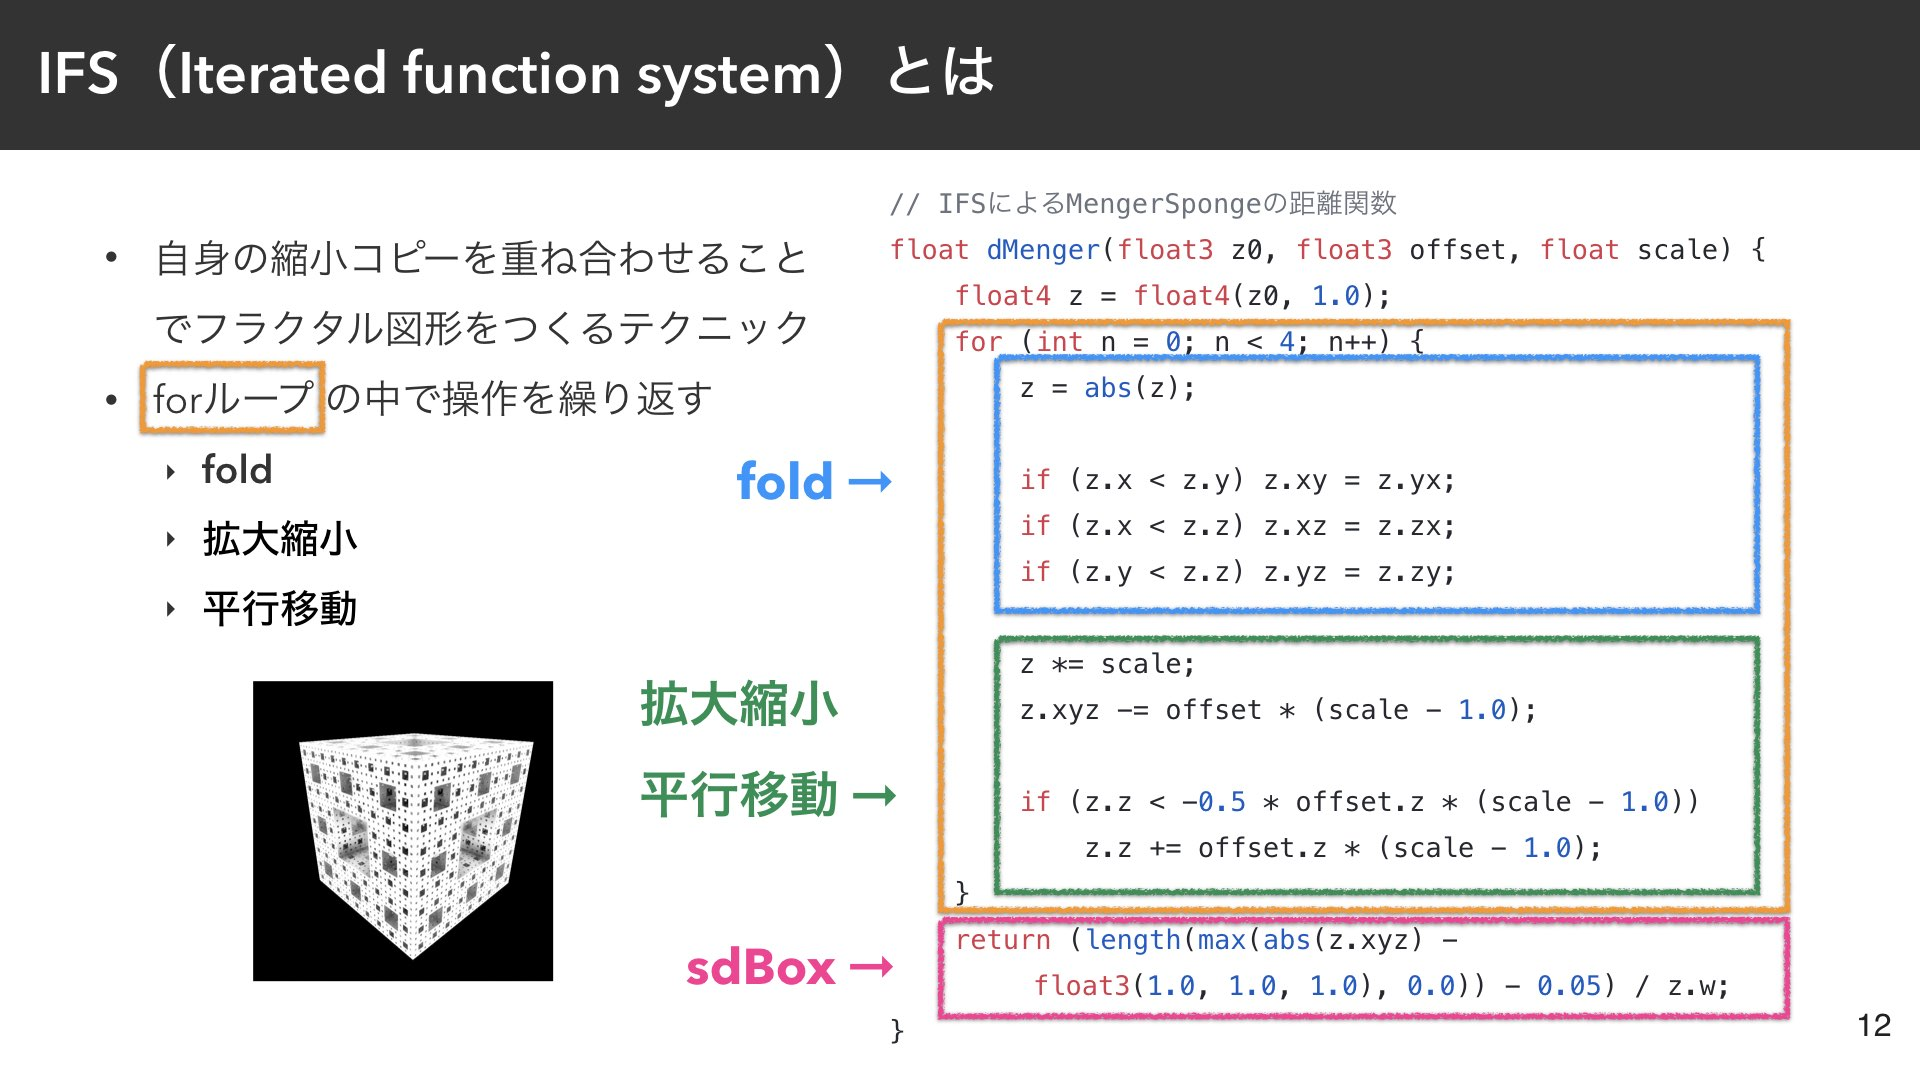 IFS(Iterated function system)とは